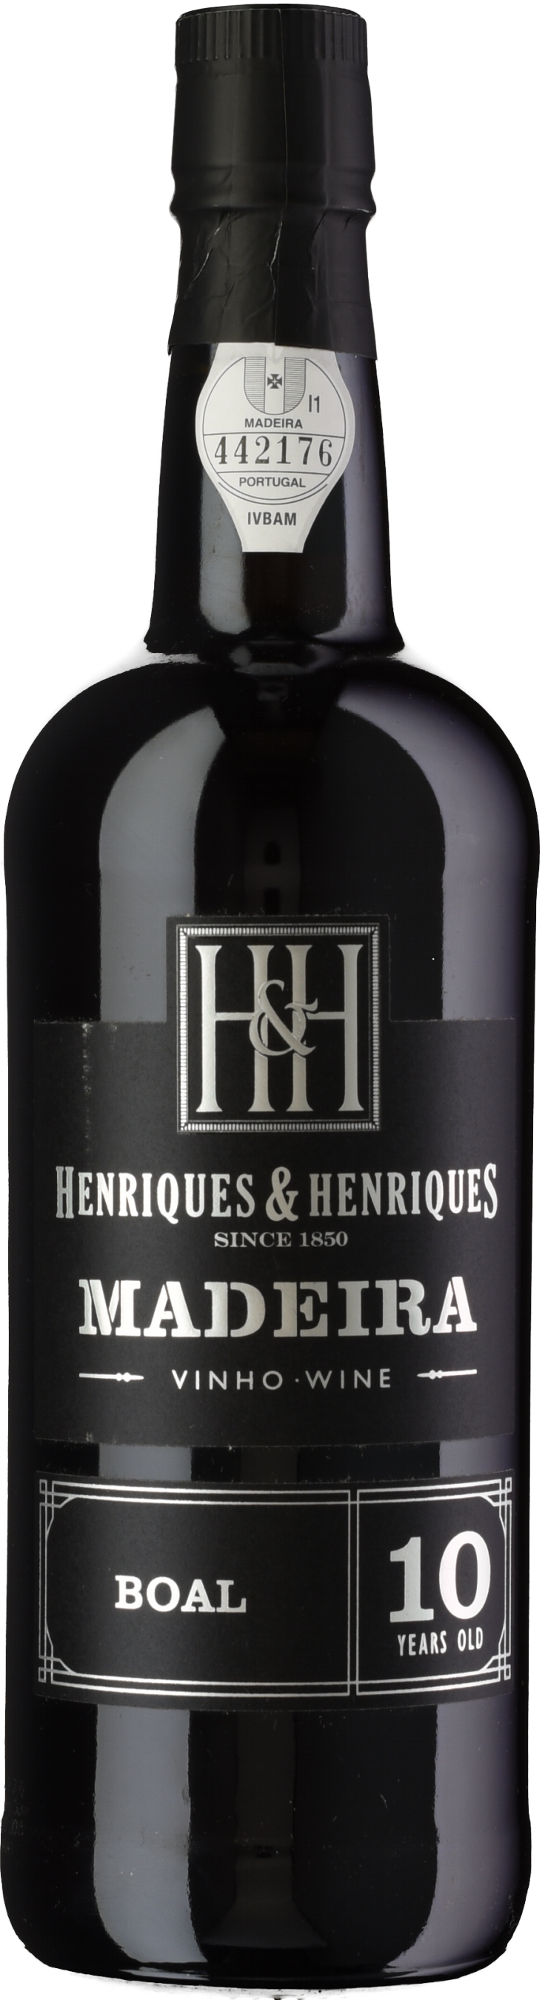 Henriques & Henriques 10 Year Bual from Portugal